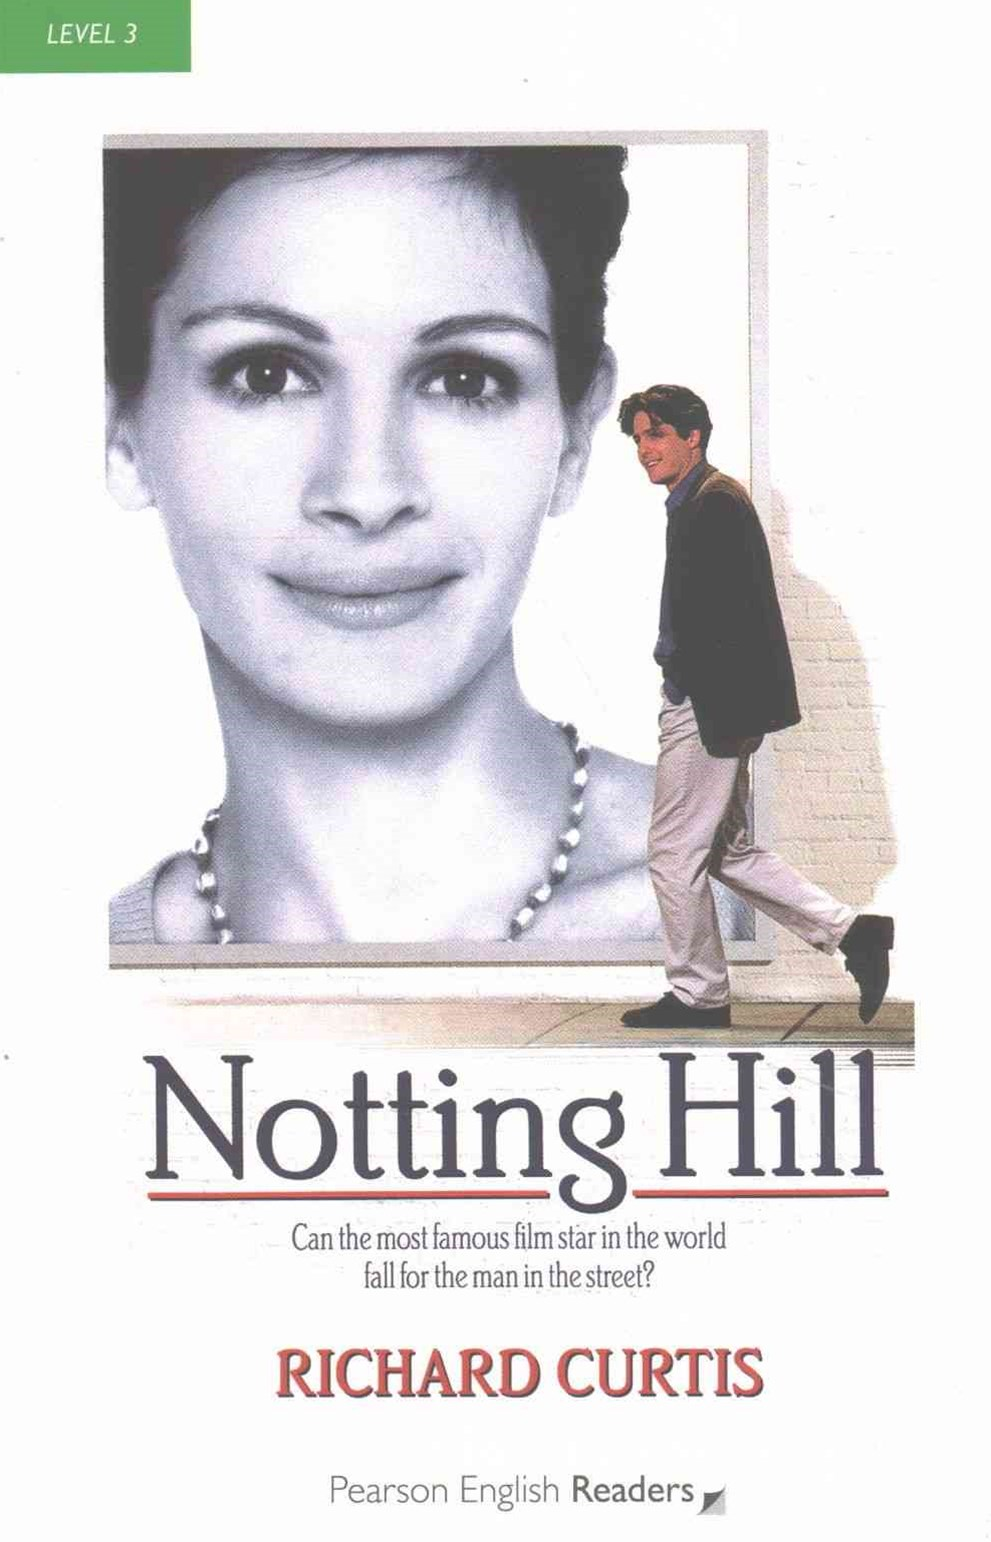 Pearson English Readers Level 3: Notting Hill (Book + CD)